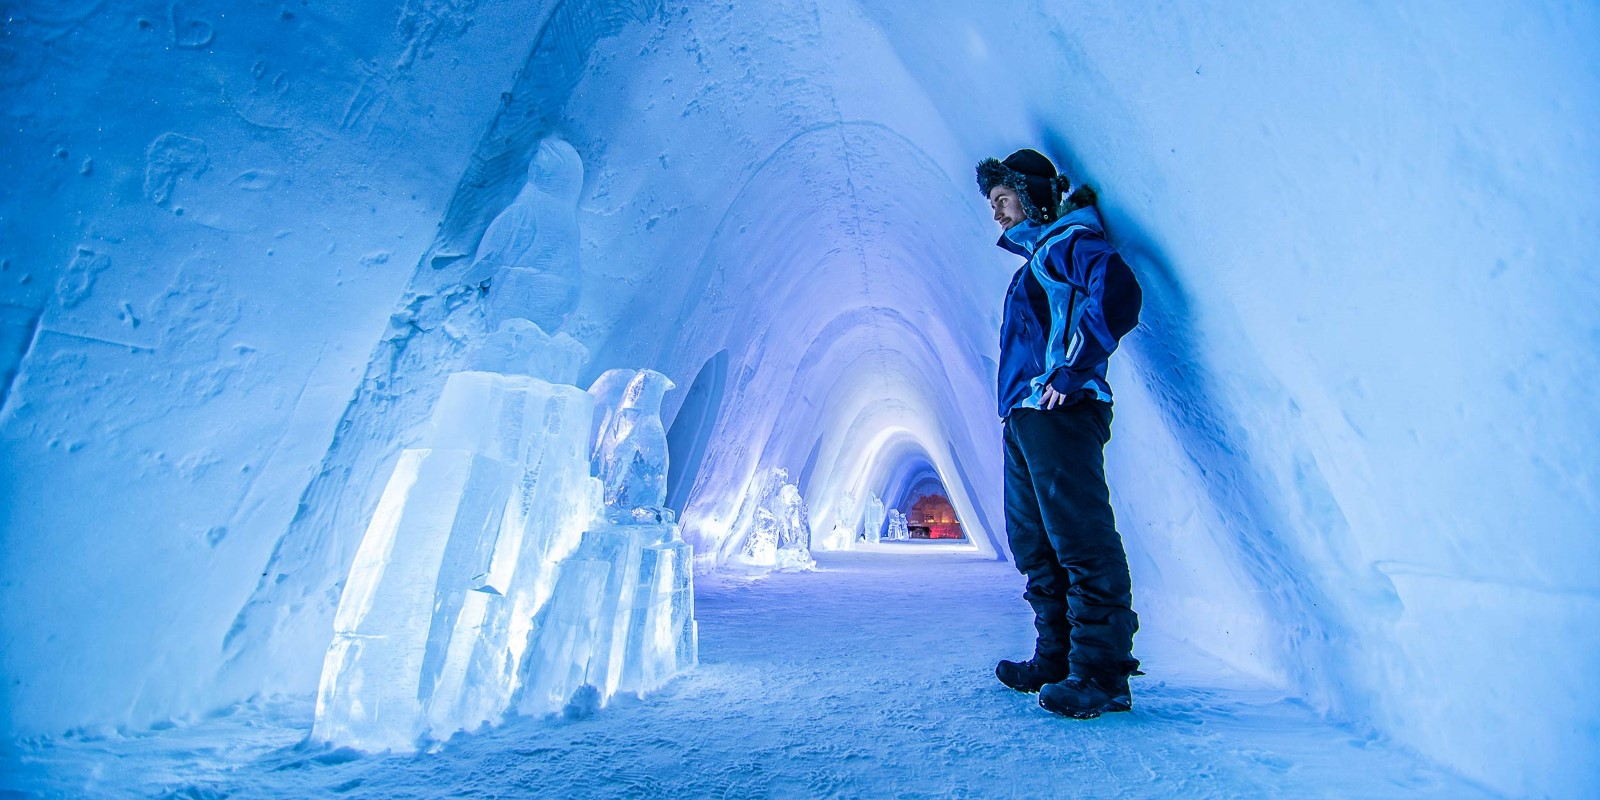 Snow hotel norway 2018 world 39 s best hotels for Kirkenes snow hotel gamme cabins